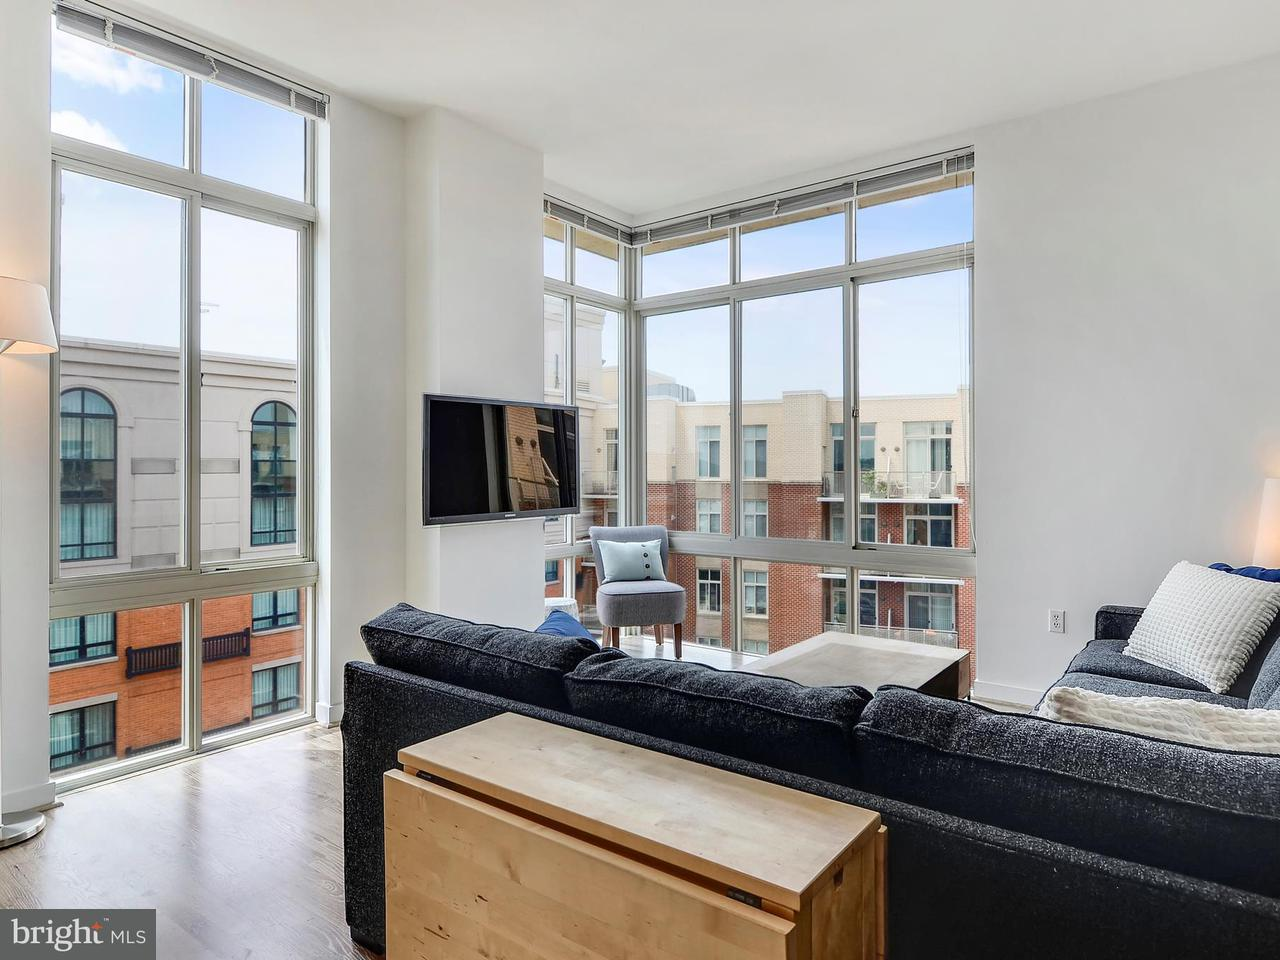 Townhouse for Sale at 1000 New Jersey Ave Se #Ph20 1000 New Jersey Ave Se #Ph20 Washington, District Of Columbia 20003 United States